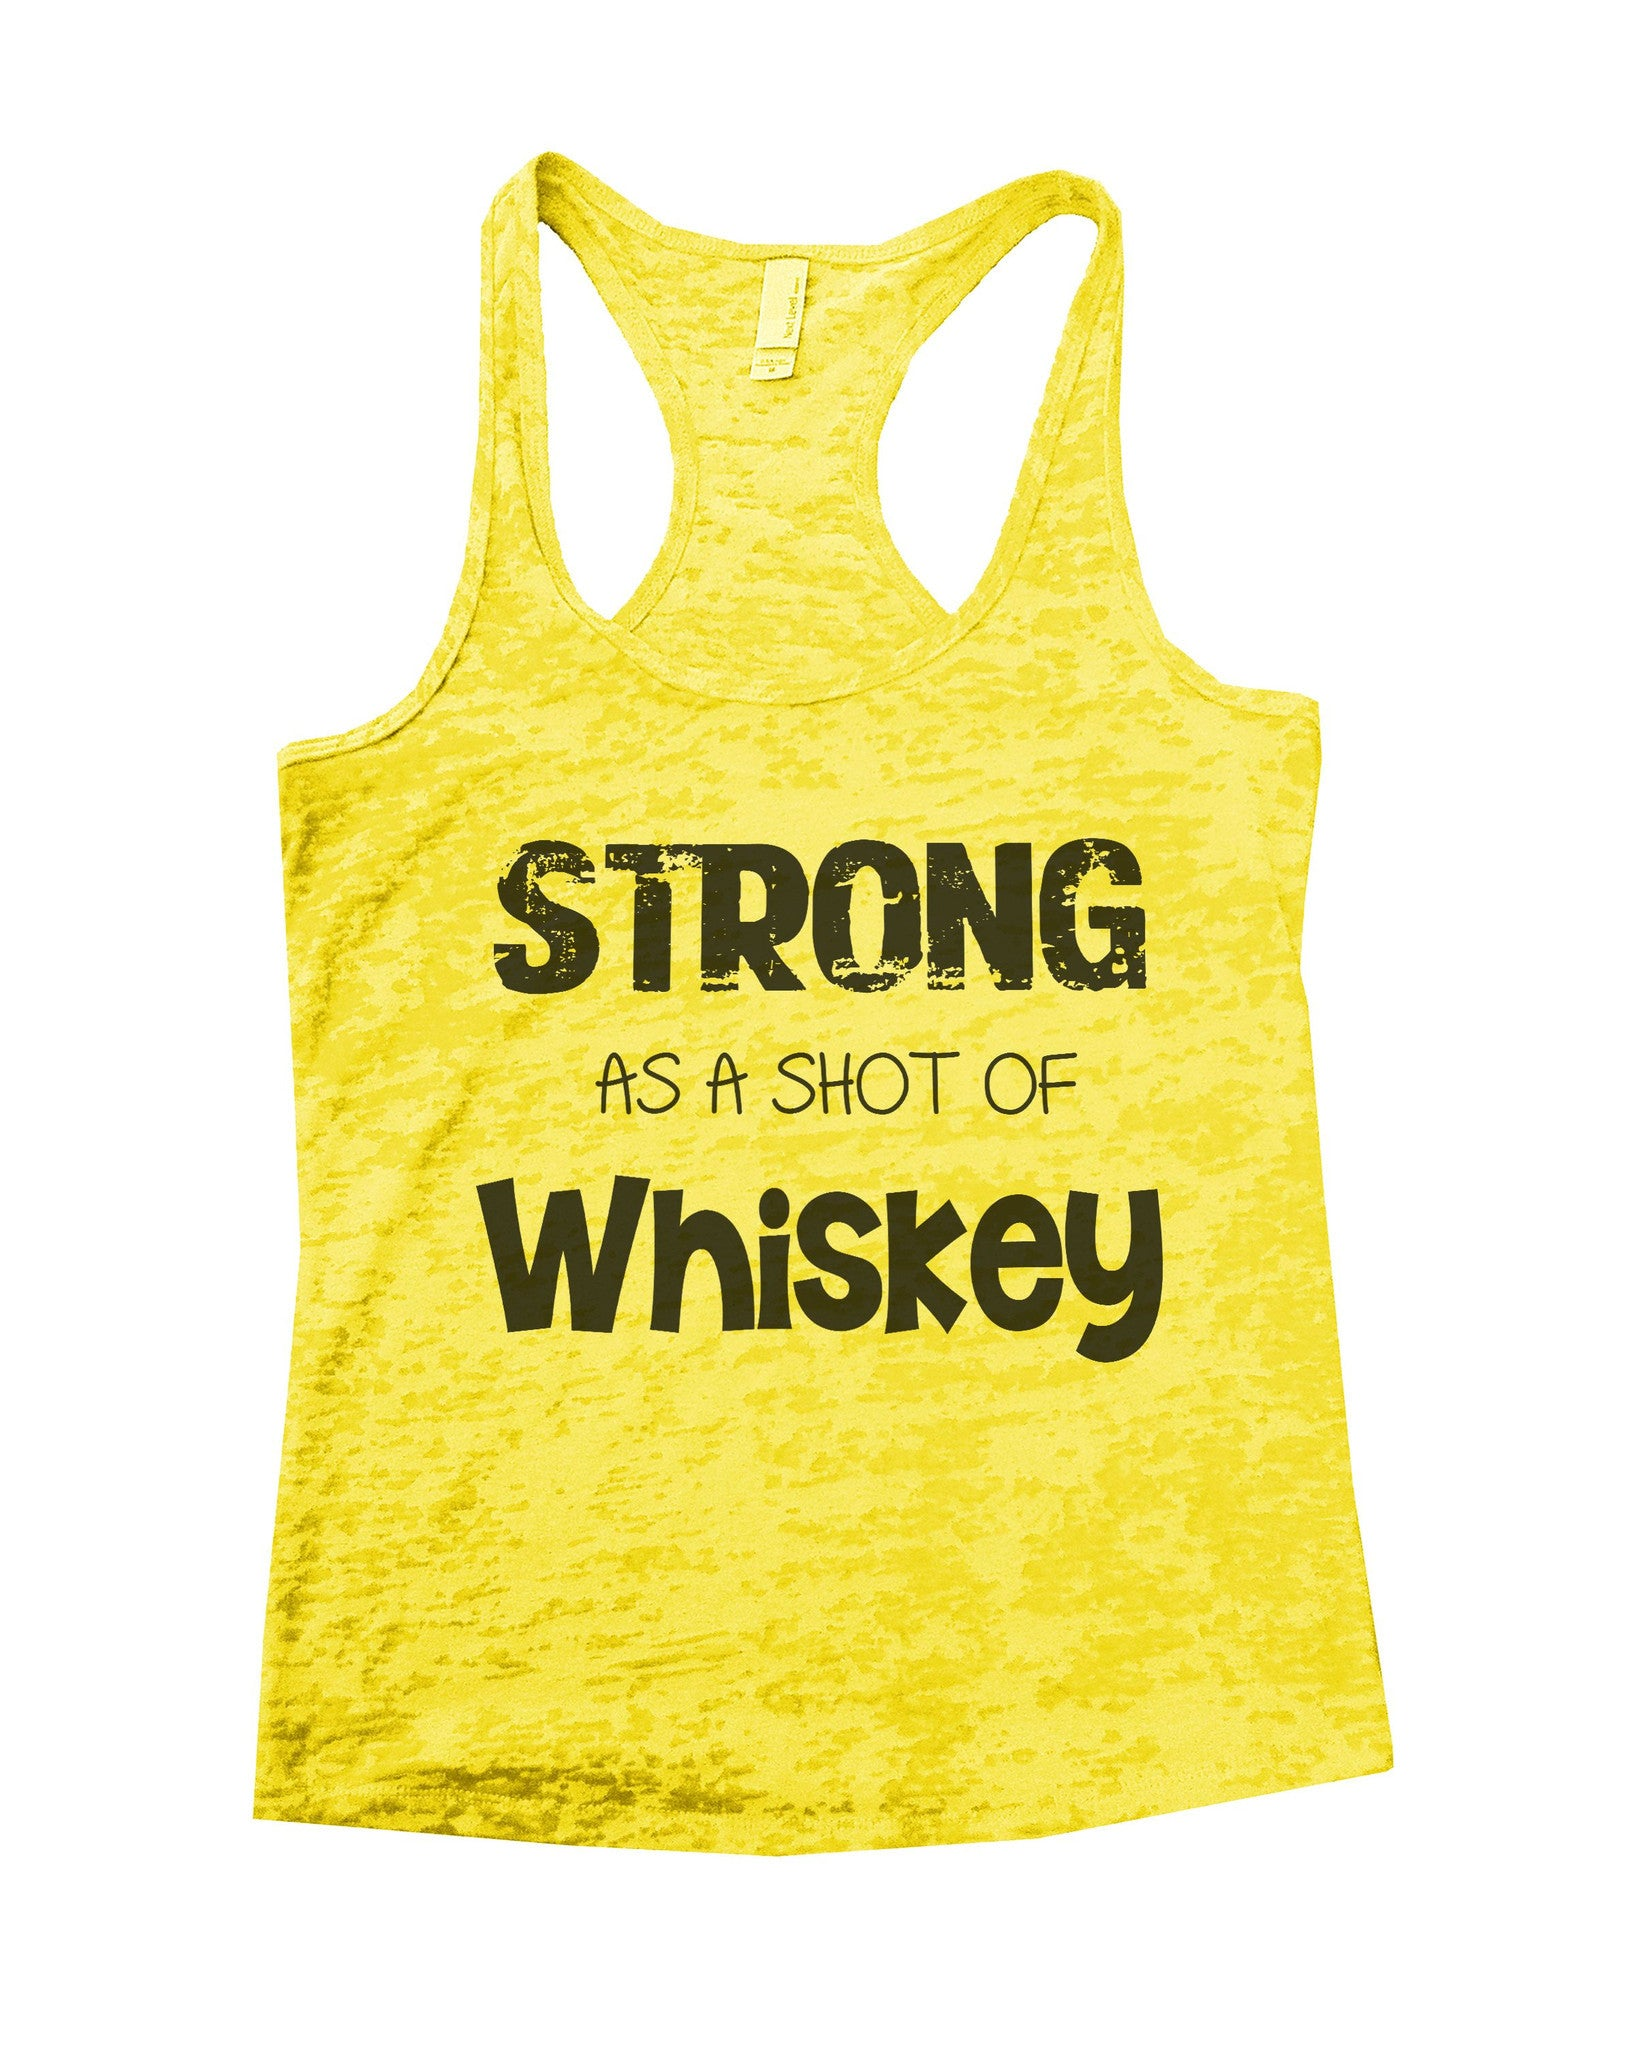 Strong As A Shot Of Whiskey Burnout Tank Top By BurnoutTankTops.com - 717 - Funny Shirts Tank Tops Burnouts and Triblends  - 6